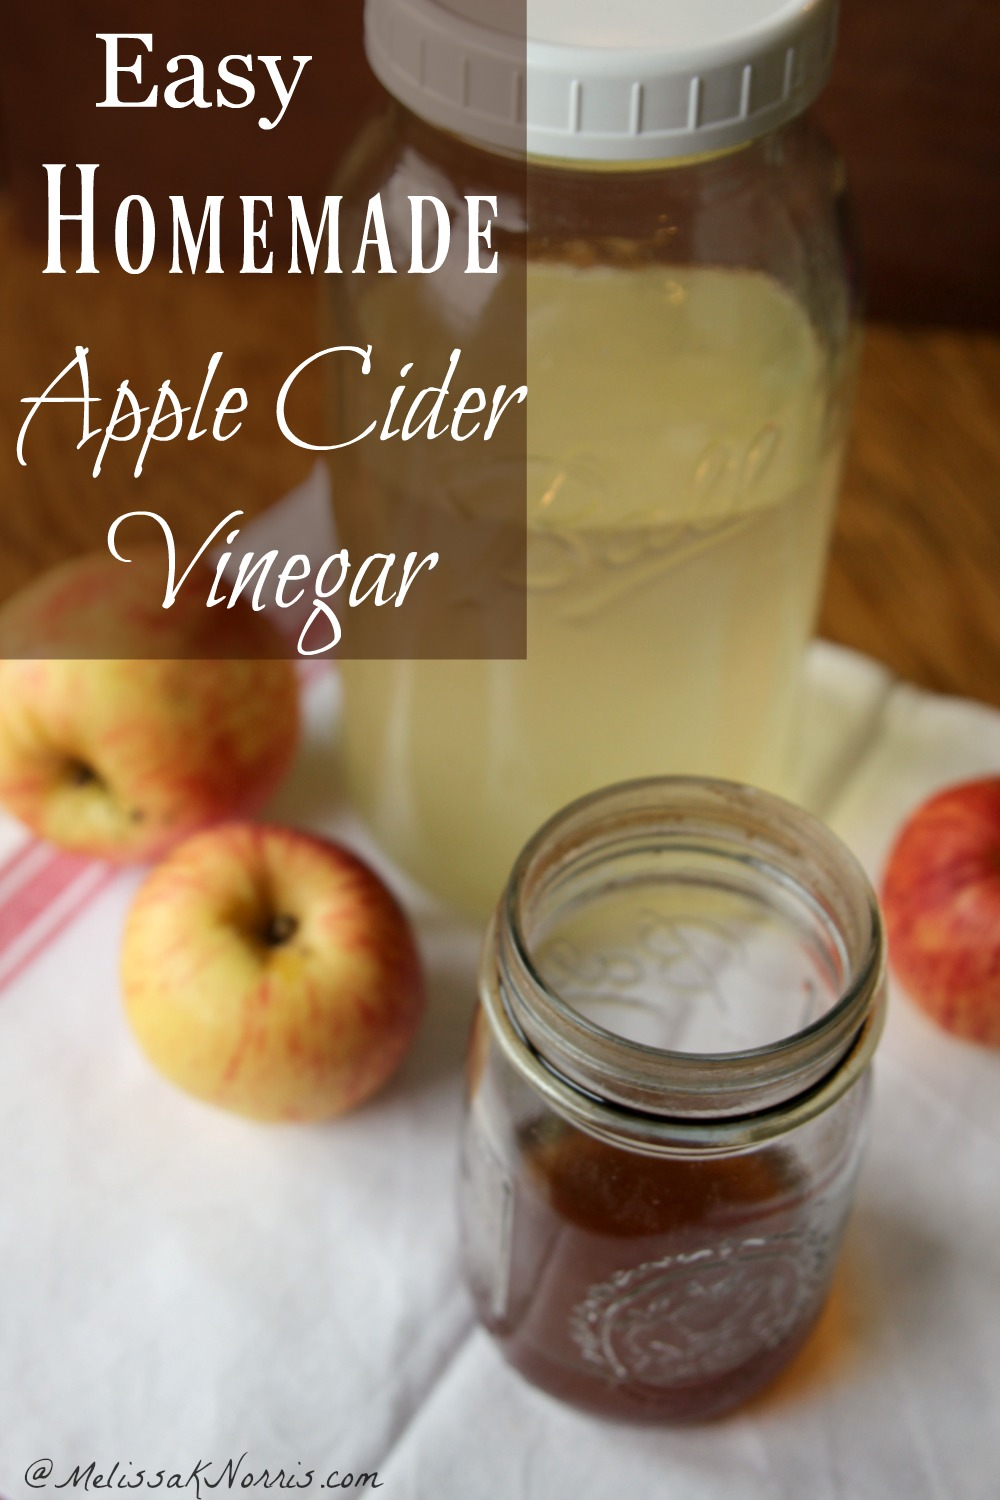 "Image of a quart Mason jar filled with apple juice in the background, and a pint Mason jar filled with apple cider vinegar in forefront. Two apples are sitting to the left, and one apple is sitting to the right. Text overlay says ""Easy Homemade Apple Cider Vinegar""."